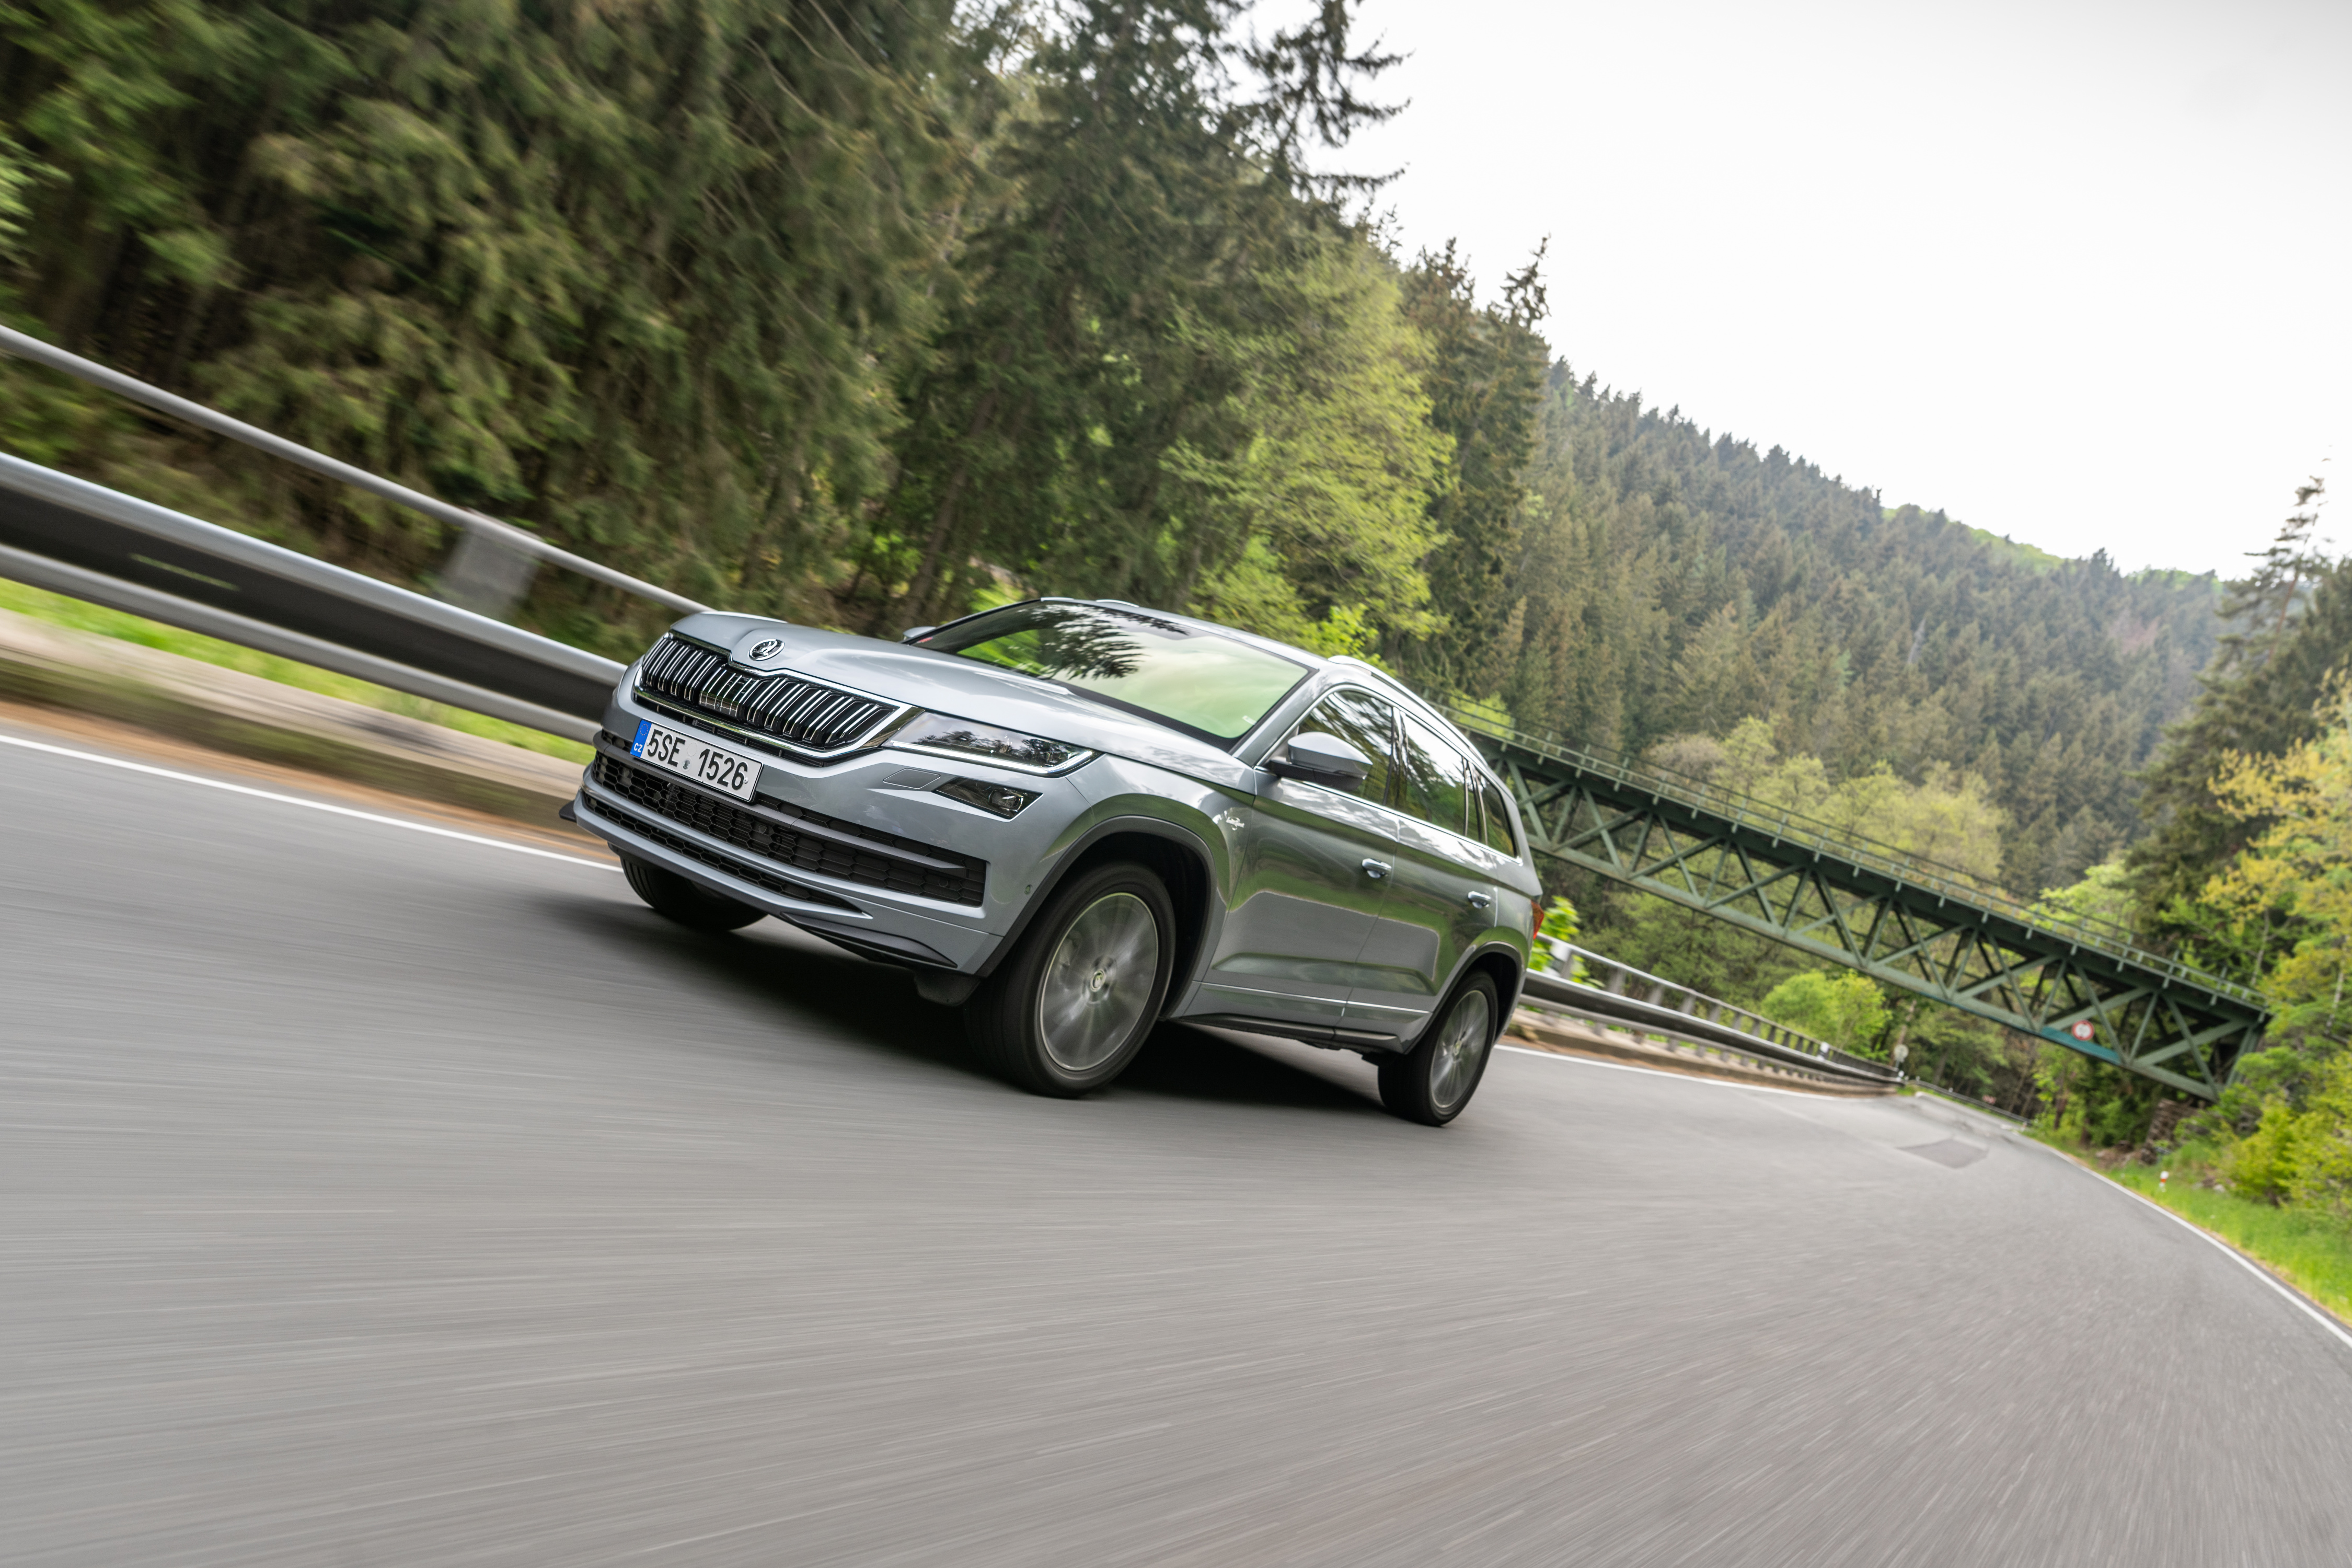 Countless new features introduced to SKODA portfolio for 2021 model year - Image 4